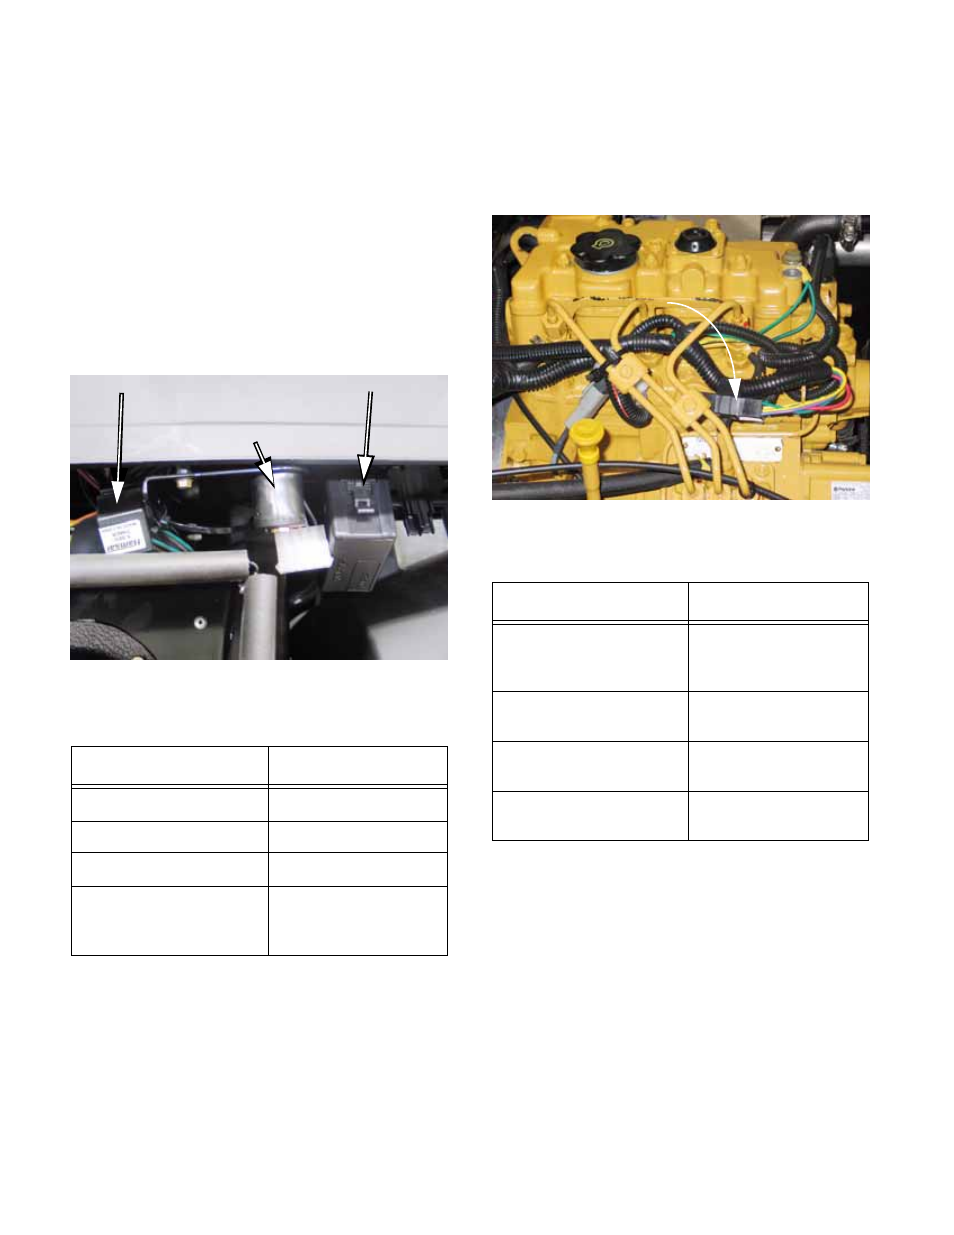 Cub Cadet 136 244 100 Wiring Diagram Trusted Diagrams 2146 Chapter 9 Electrical 4 X Volunteer User Manual